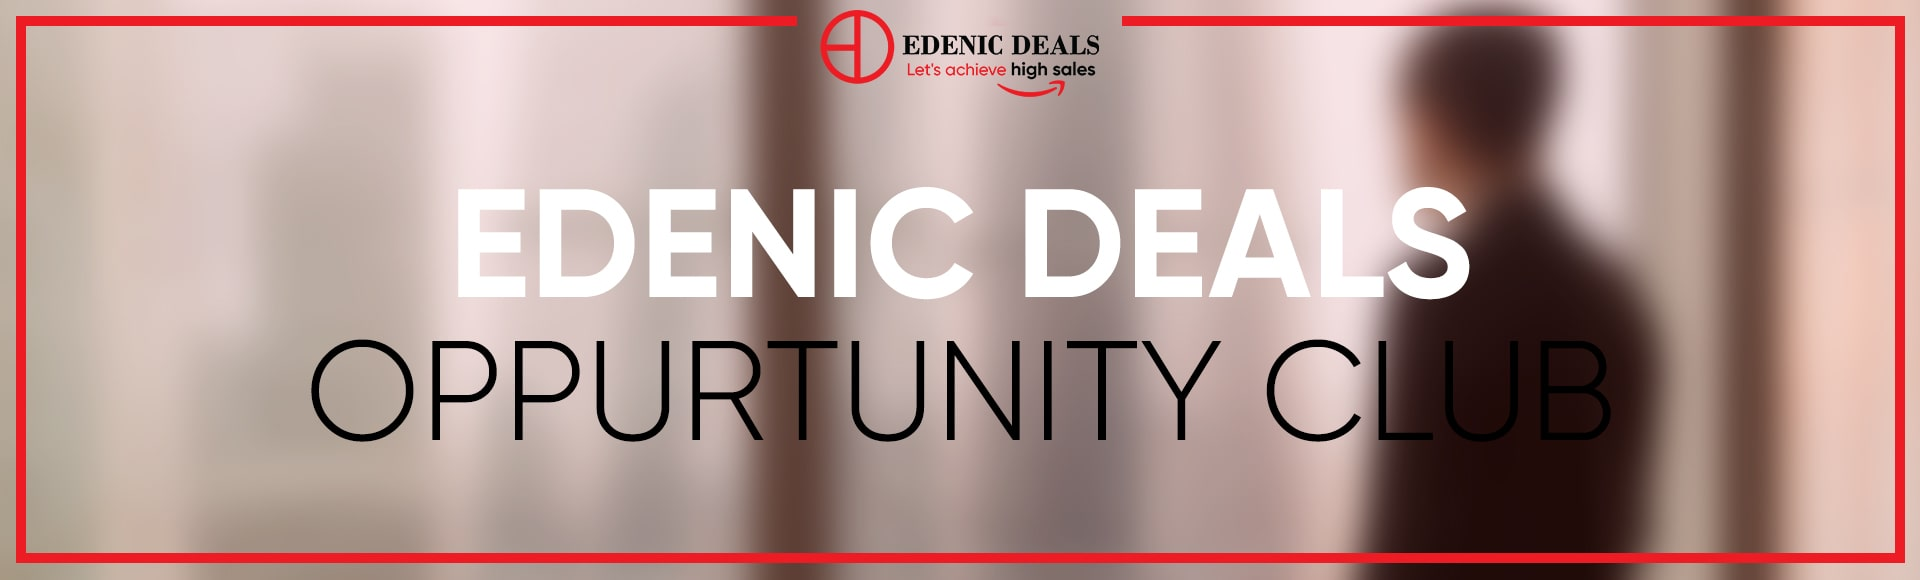 Edenic Deals Opportunity club